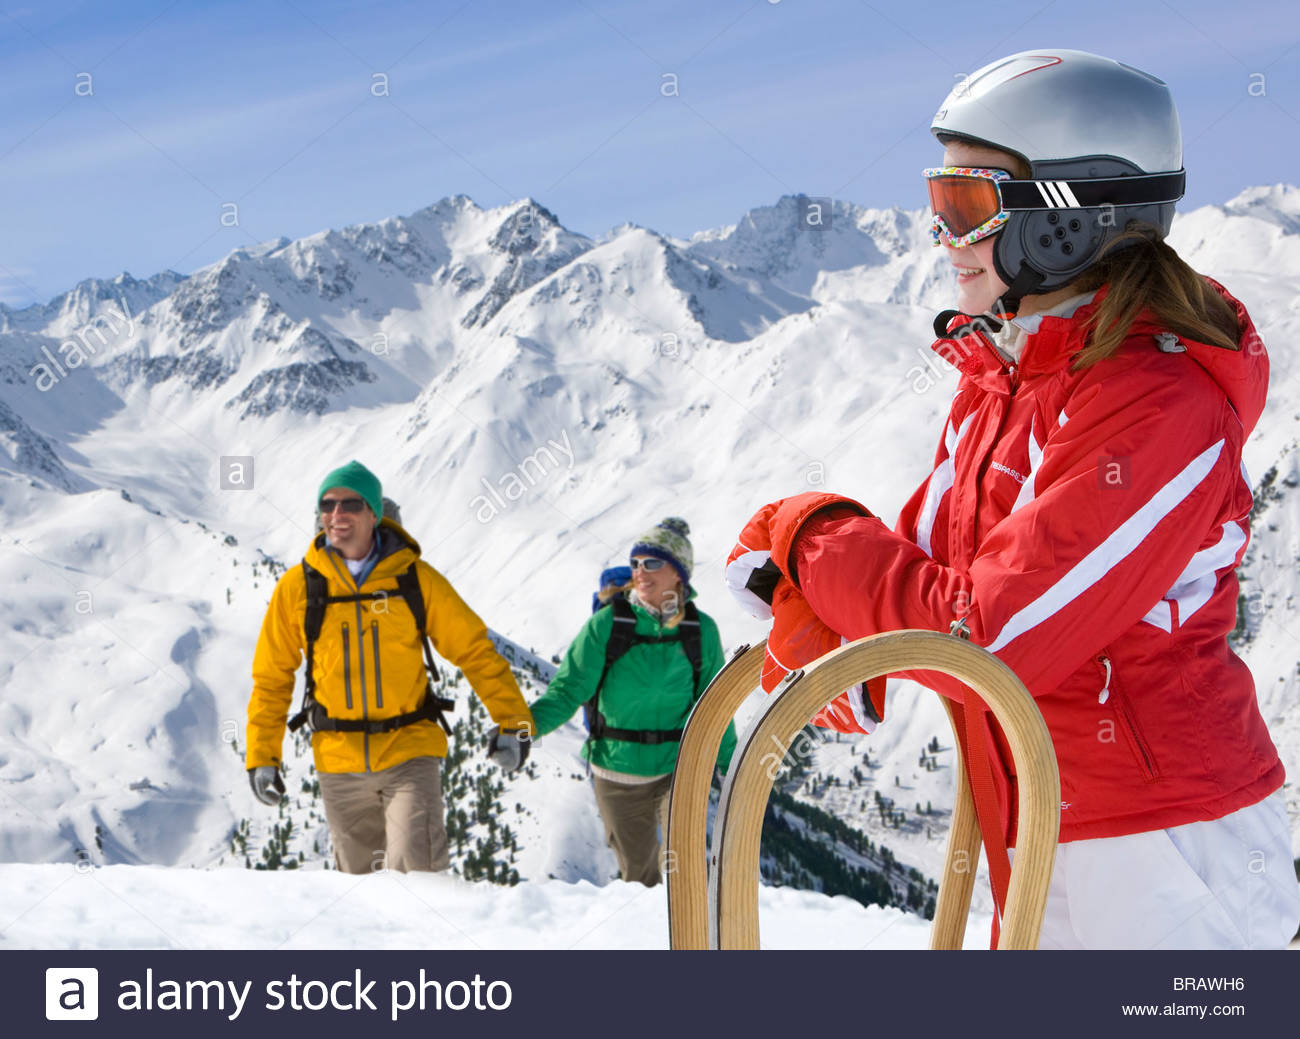 Girl standing in snow with sled, hikers nearby - Stock Image